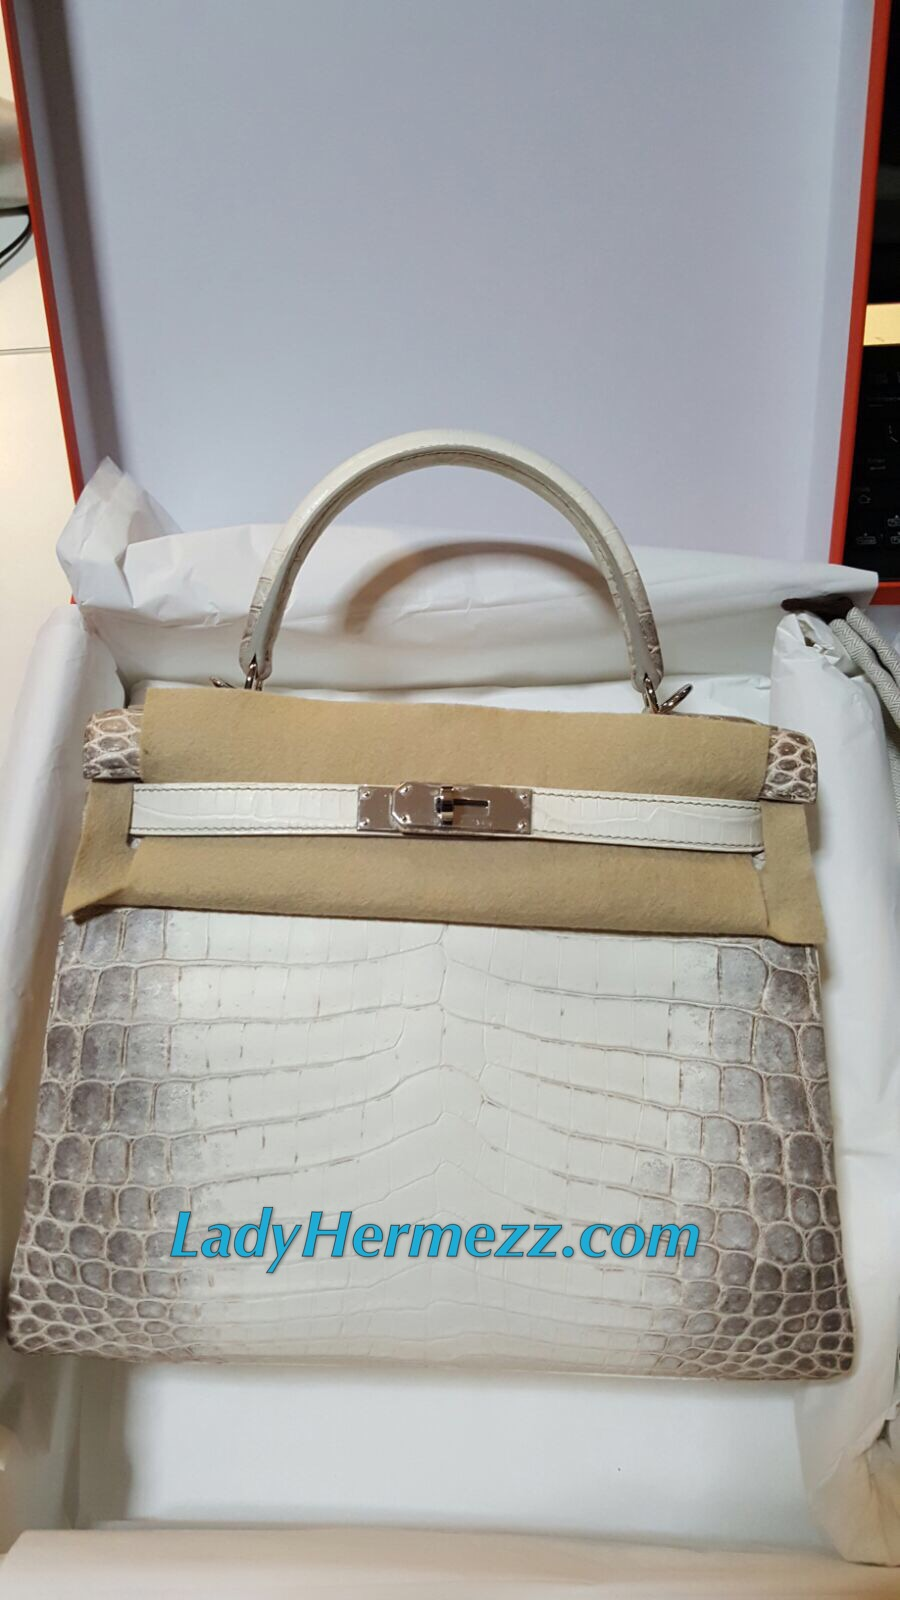 Hermes Mimosa Matte Alligator Kelly 28cm Palladium Hardware